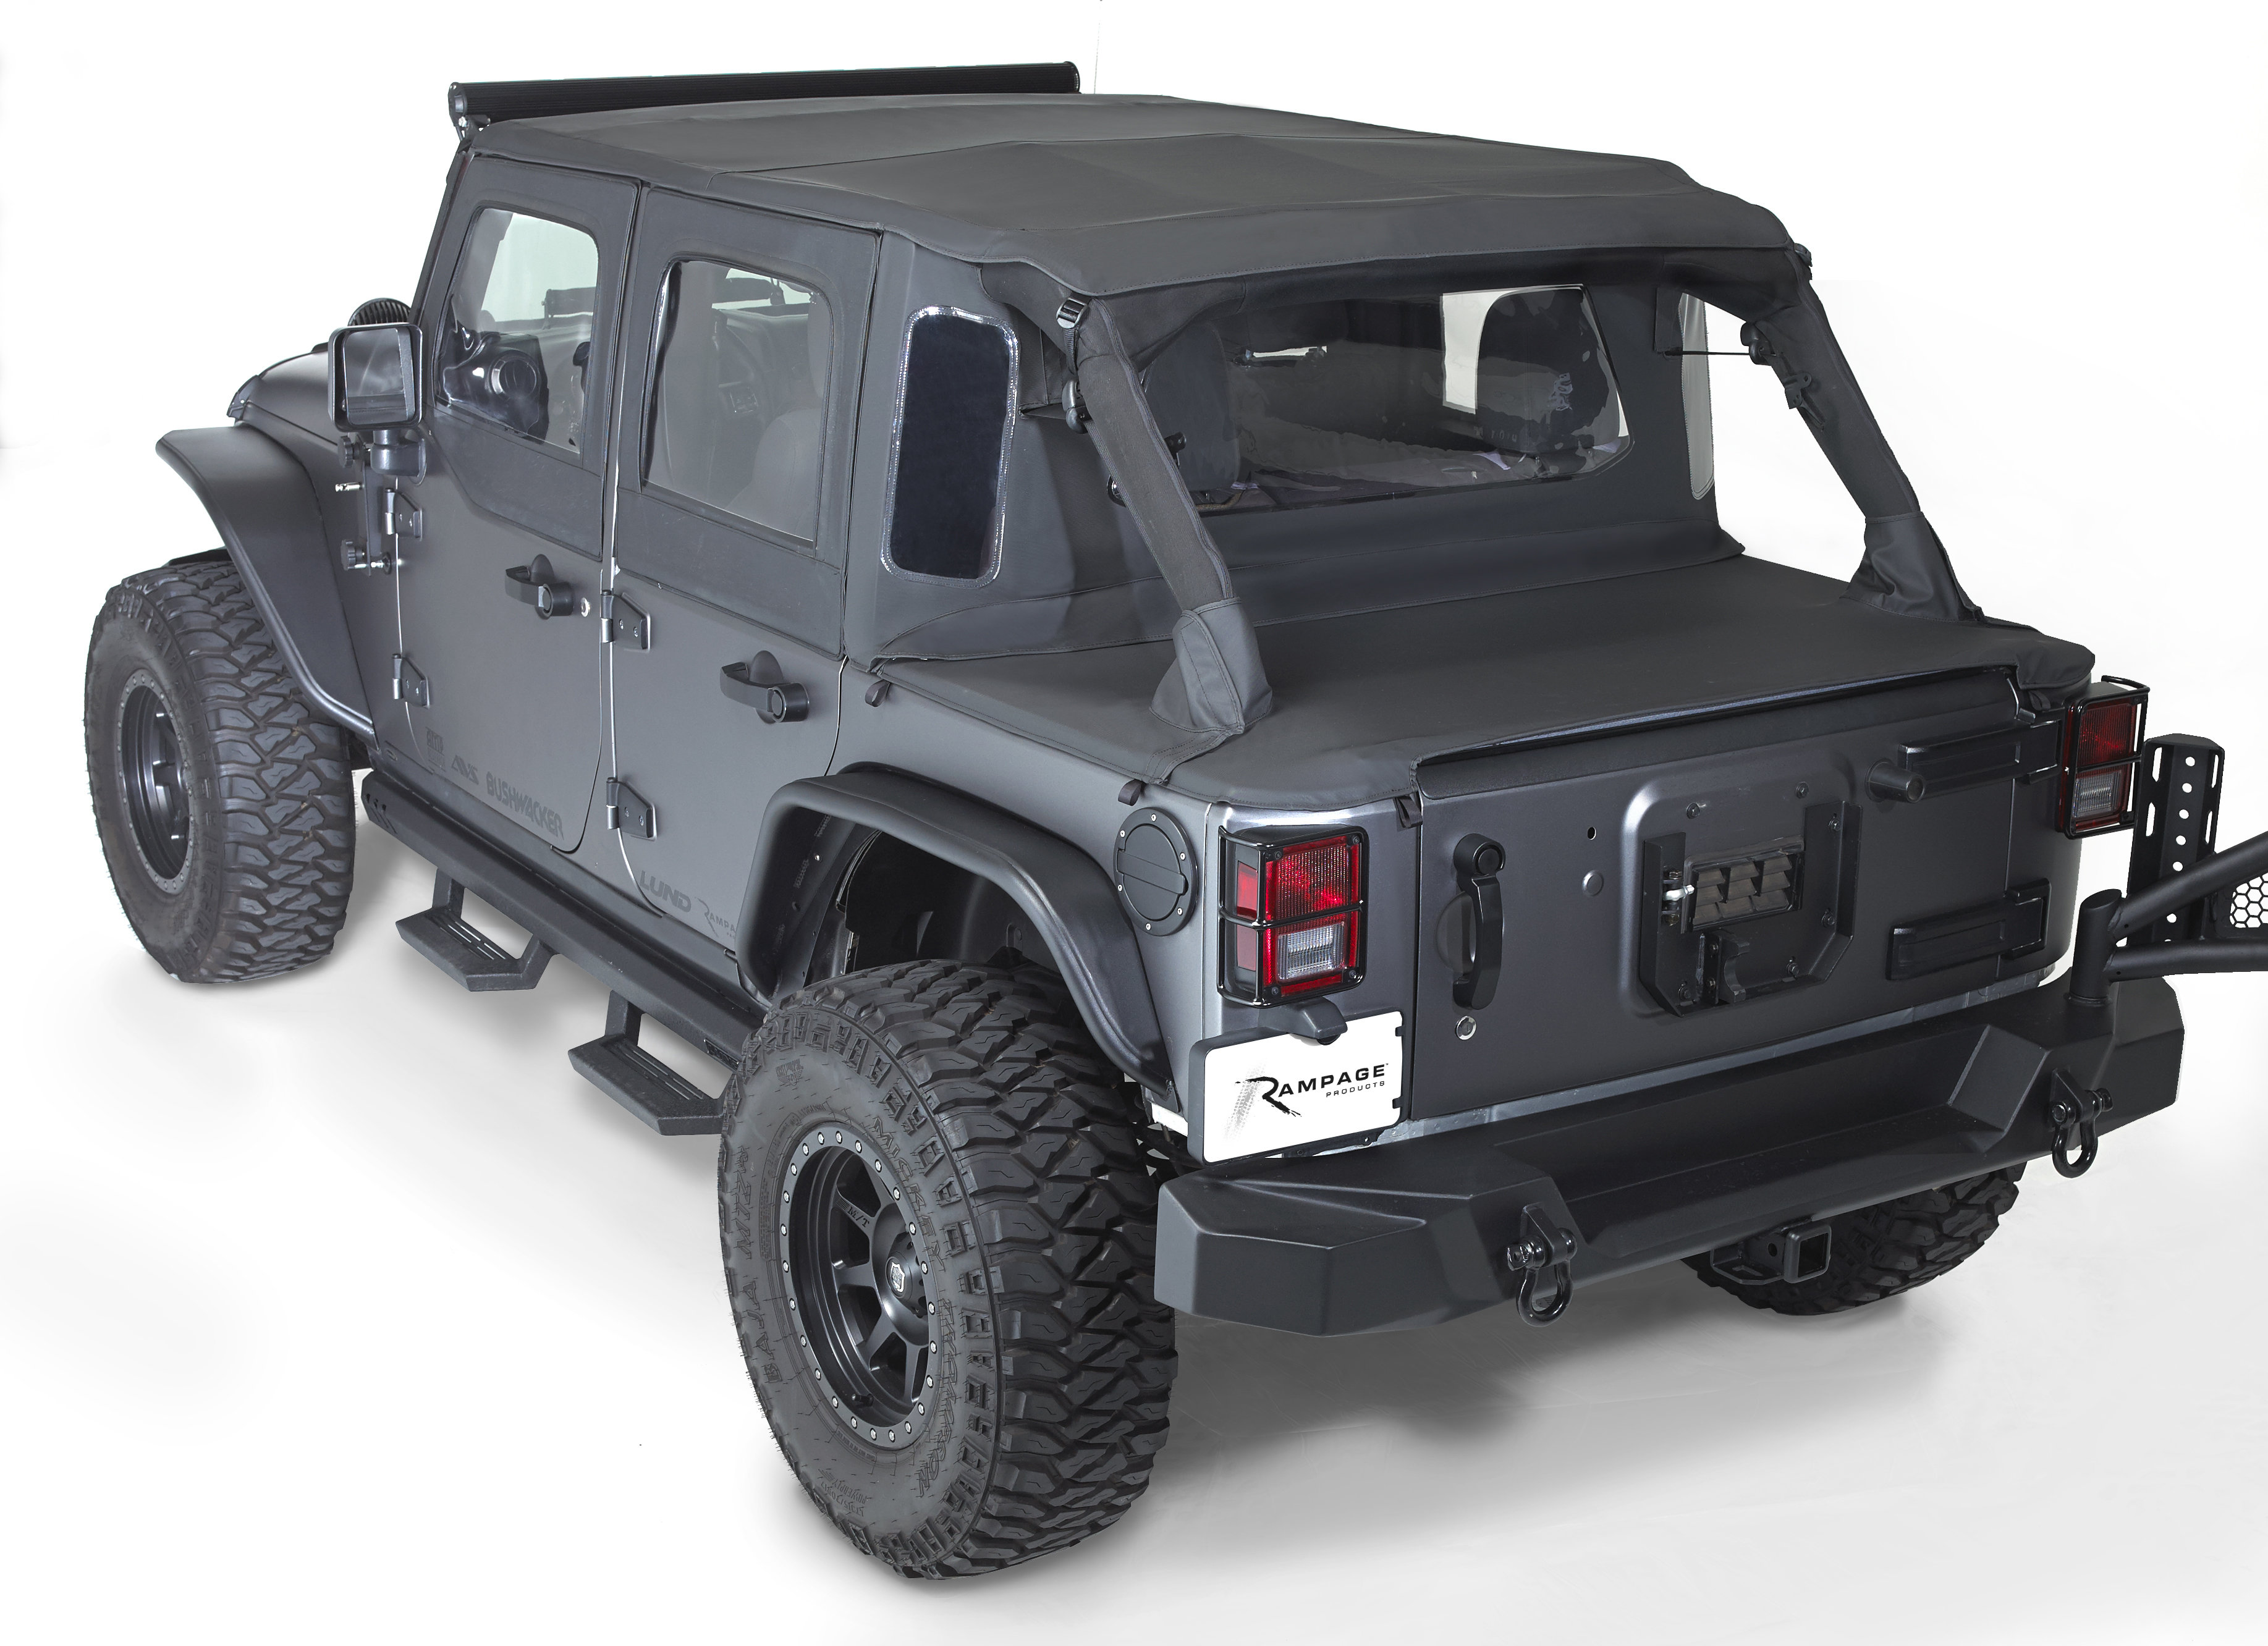 jeep of from transforms new supplier any top a in leading tonneau october instant premium jk parts and accessories the pickup has marketplace products trailview released specialty rampage